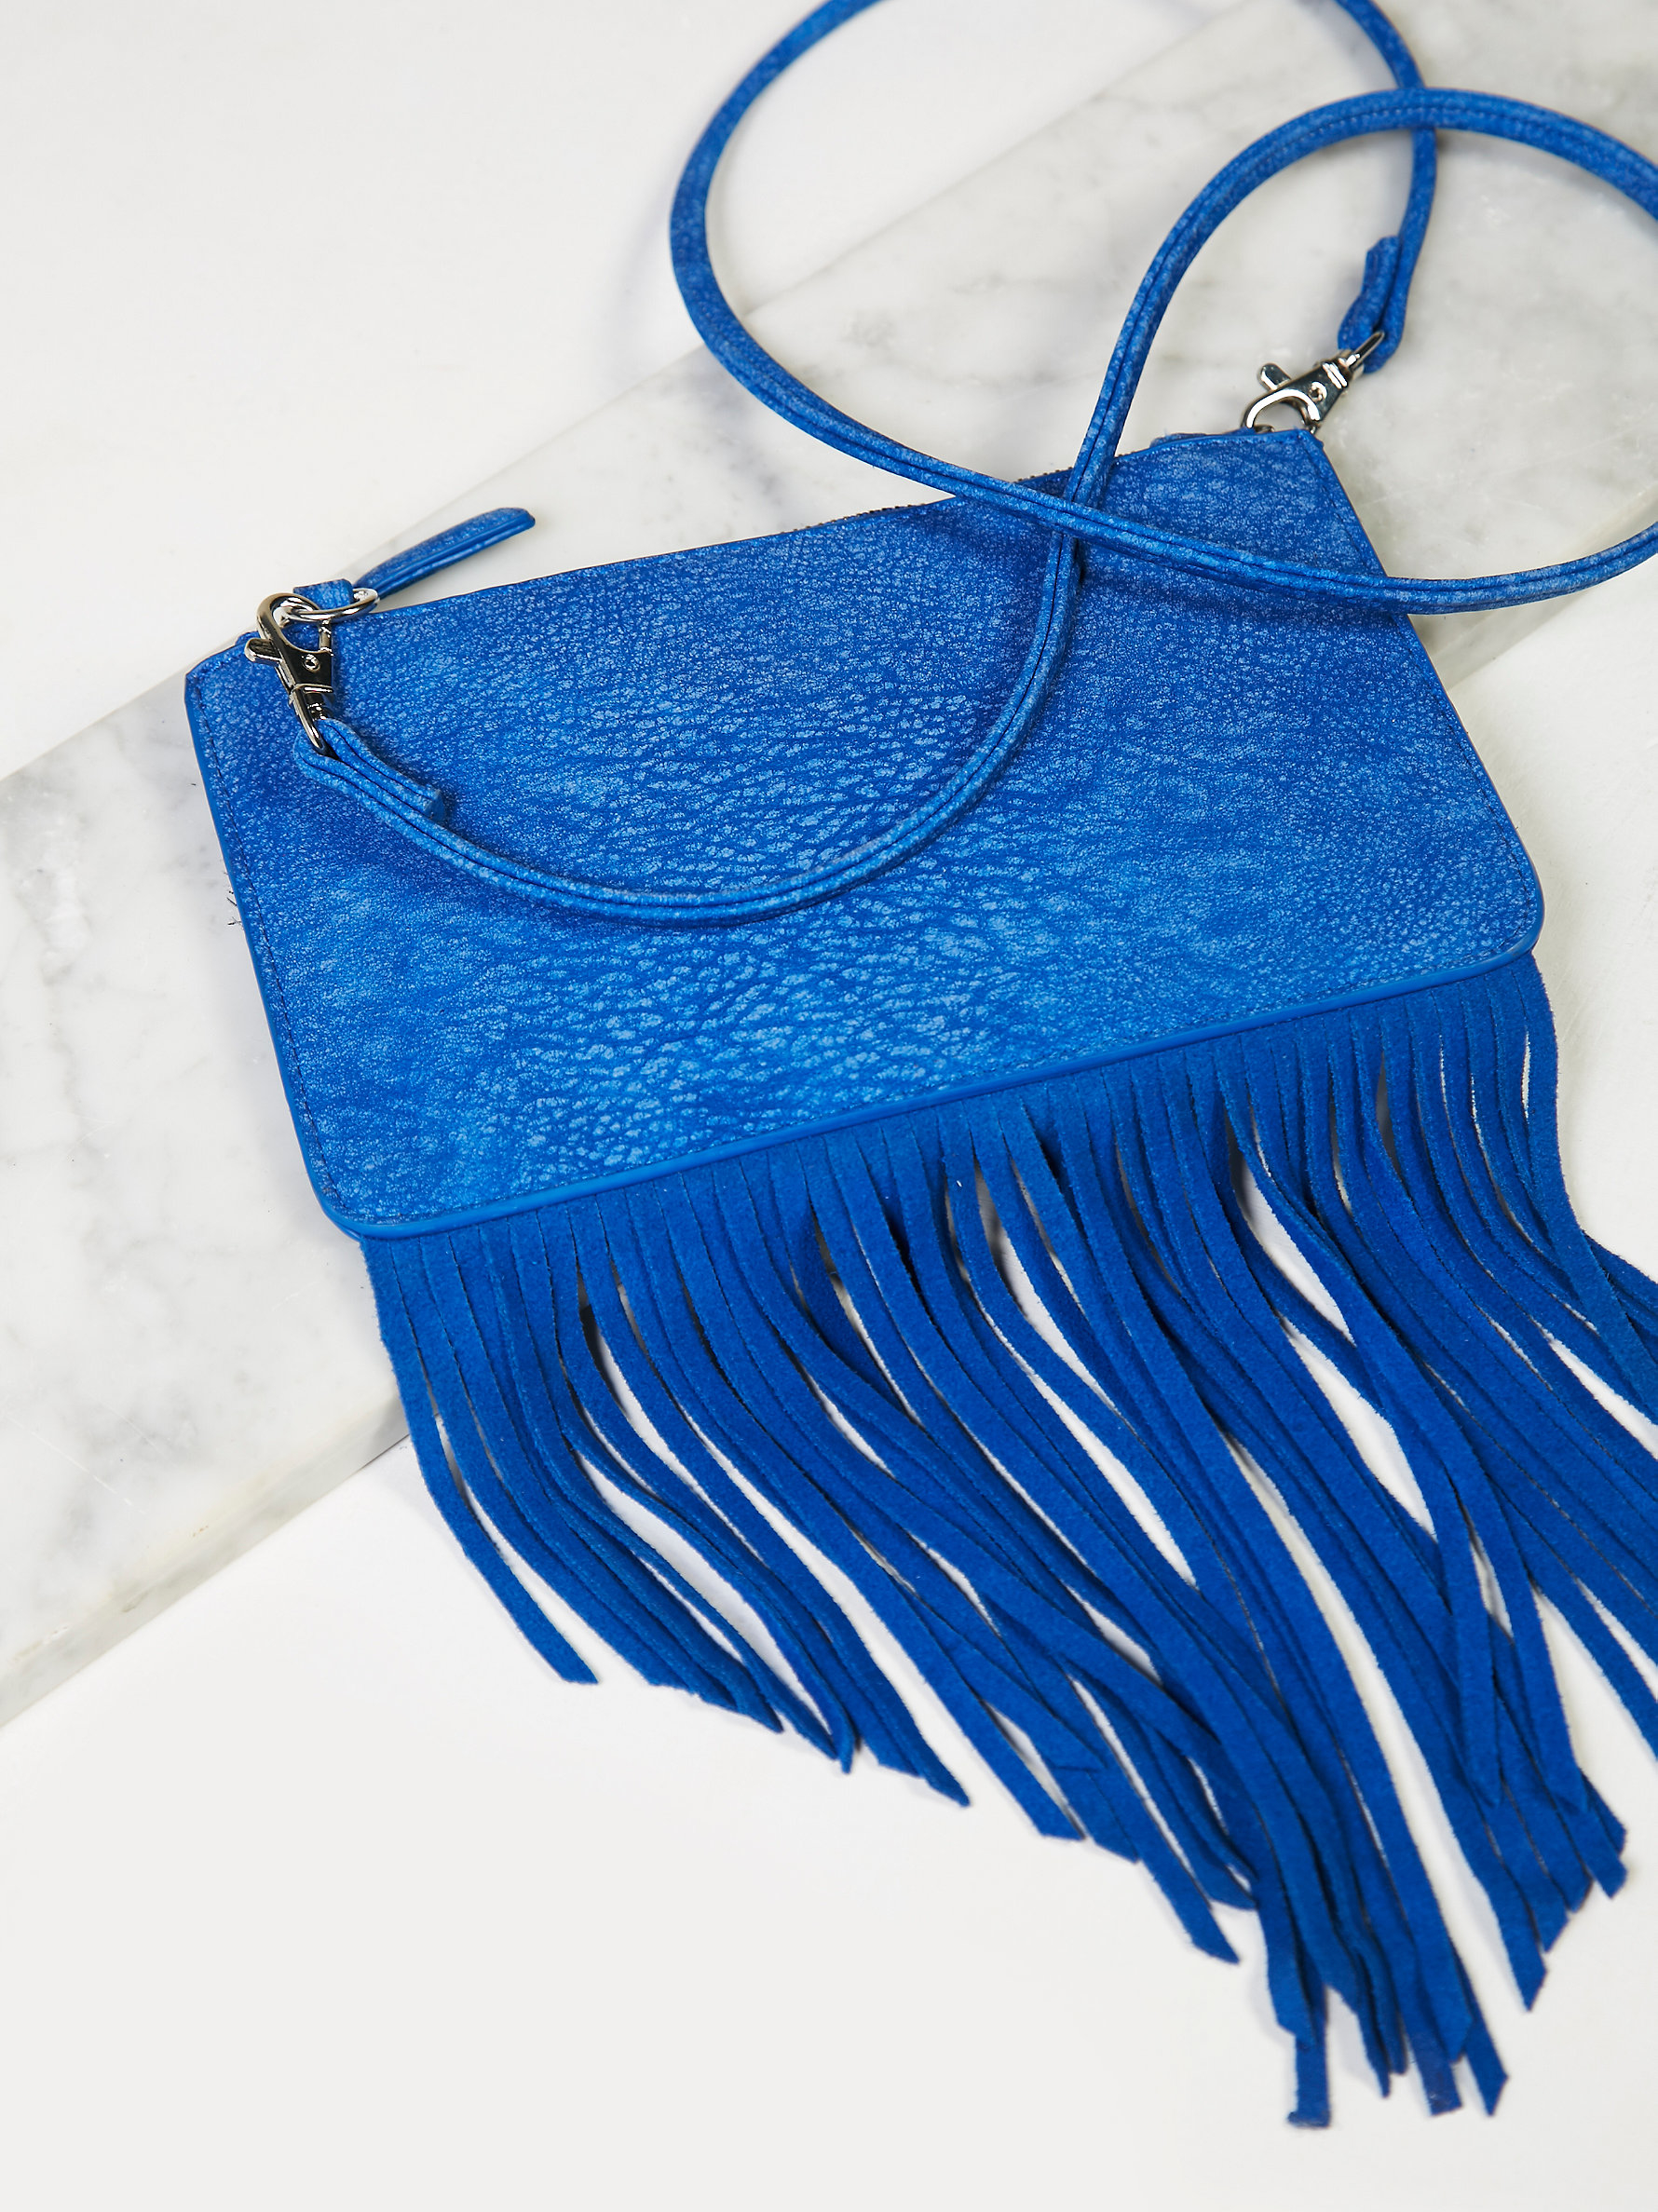 Free People Leather Mini Fringe Crossbody in Cobalt Blue (Blue)